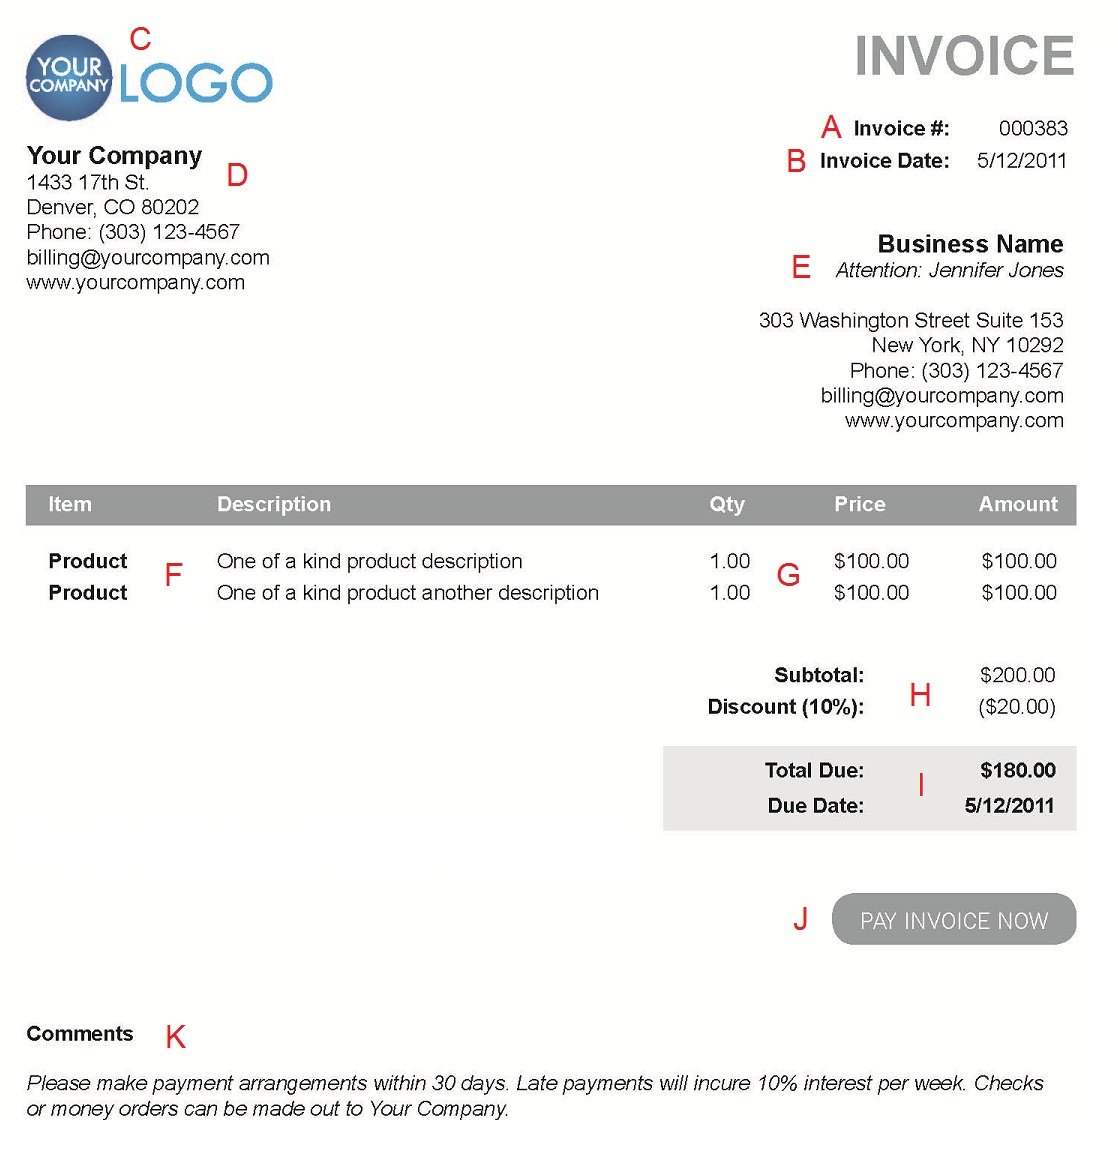 Aaaaeroincus  Prepossessing The  Different Sections Of An Electronic Payment Invoice With Excellent A  With Lovely Vintage Invoice Also Vendor Invoice In Sap In Addition Uses Of Invoice And What Is An Invoice Price On A New Car As Well As Payment On The Invoice Additionally Stripe Invoicing From Paysimplecom With Aaaaeroincus  Excellent The  Different Sections Of An Electronic Payment Invoice With Lovely A  And Prepossessing Vintage Invoice Also Vendor Invoice In Sap In Addition Uses Of Invoice From Paysimplecom